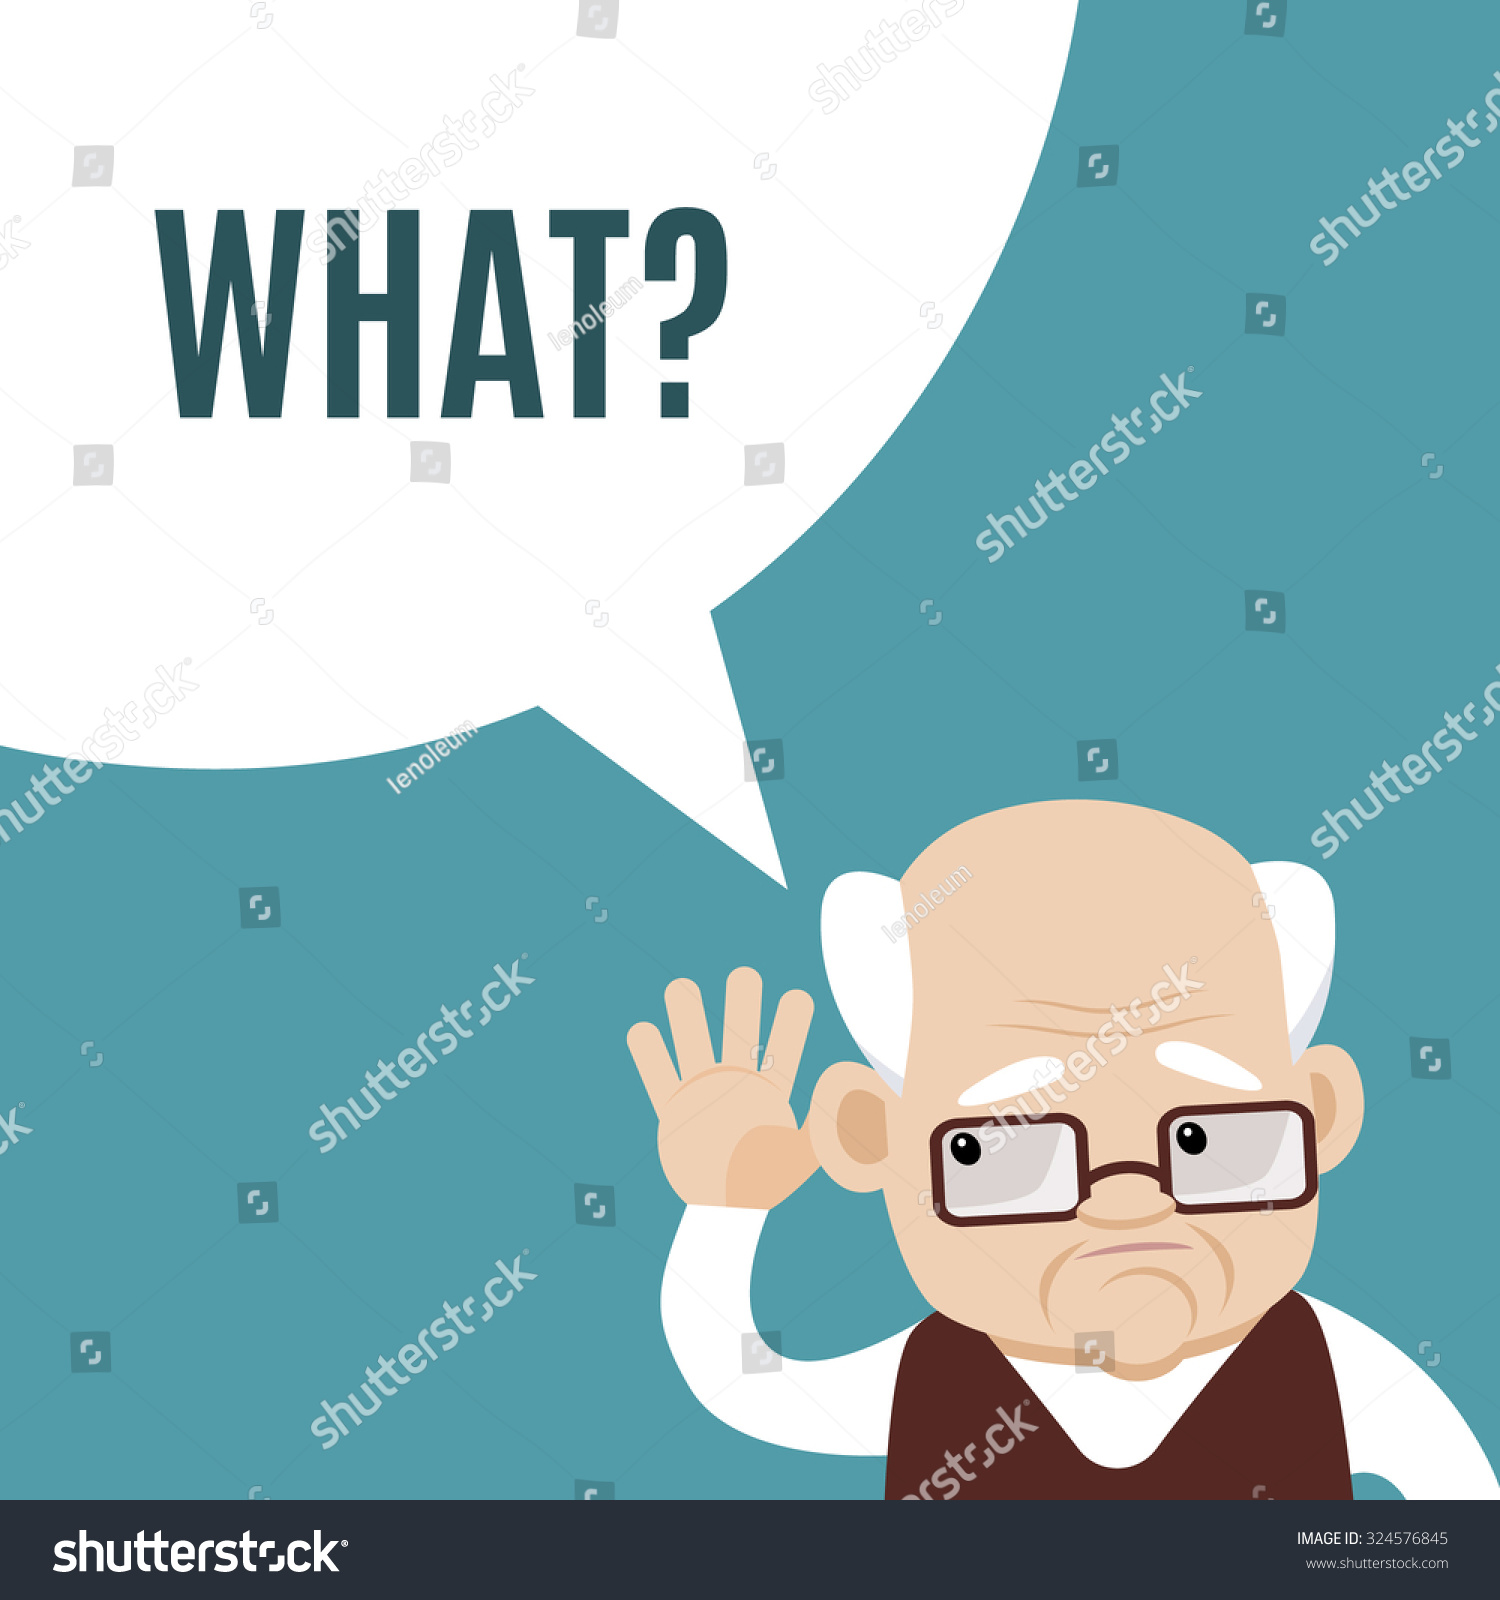 Cartoon Word Old 34845416 furthermore Stock Illustration Cartoon Man Waving Happy Smiling Image41817626 moreover Cartoon Nurse Helping Older Man With 8588872 also 3 as well Royalty Free Stock Image Number 0 Zero Guy Speech Bubble Image17263846. on old cartoon bubble